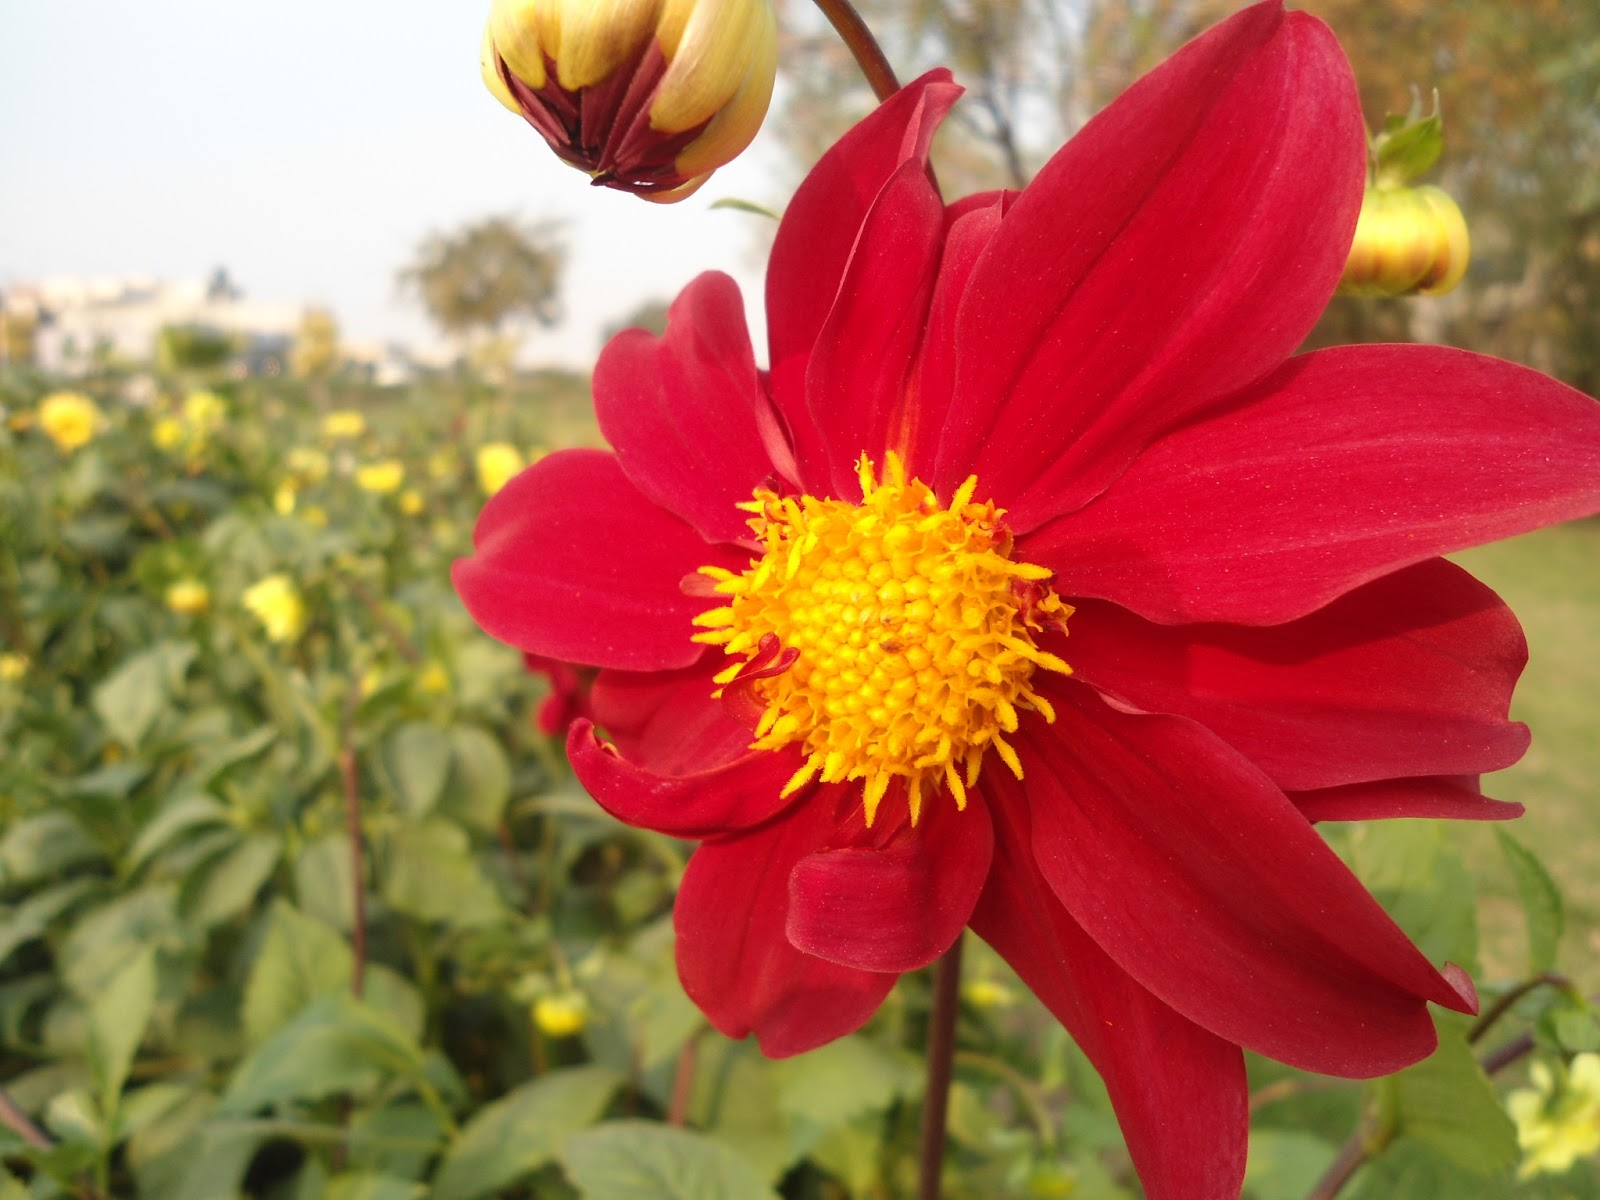 Flora hort all about horticulture floriculture and landscaping there are 30 species with 20000 cultivars some producing large show chrysanthemum like flower heads dahlias were originally izmirmasajfo